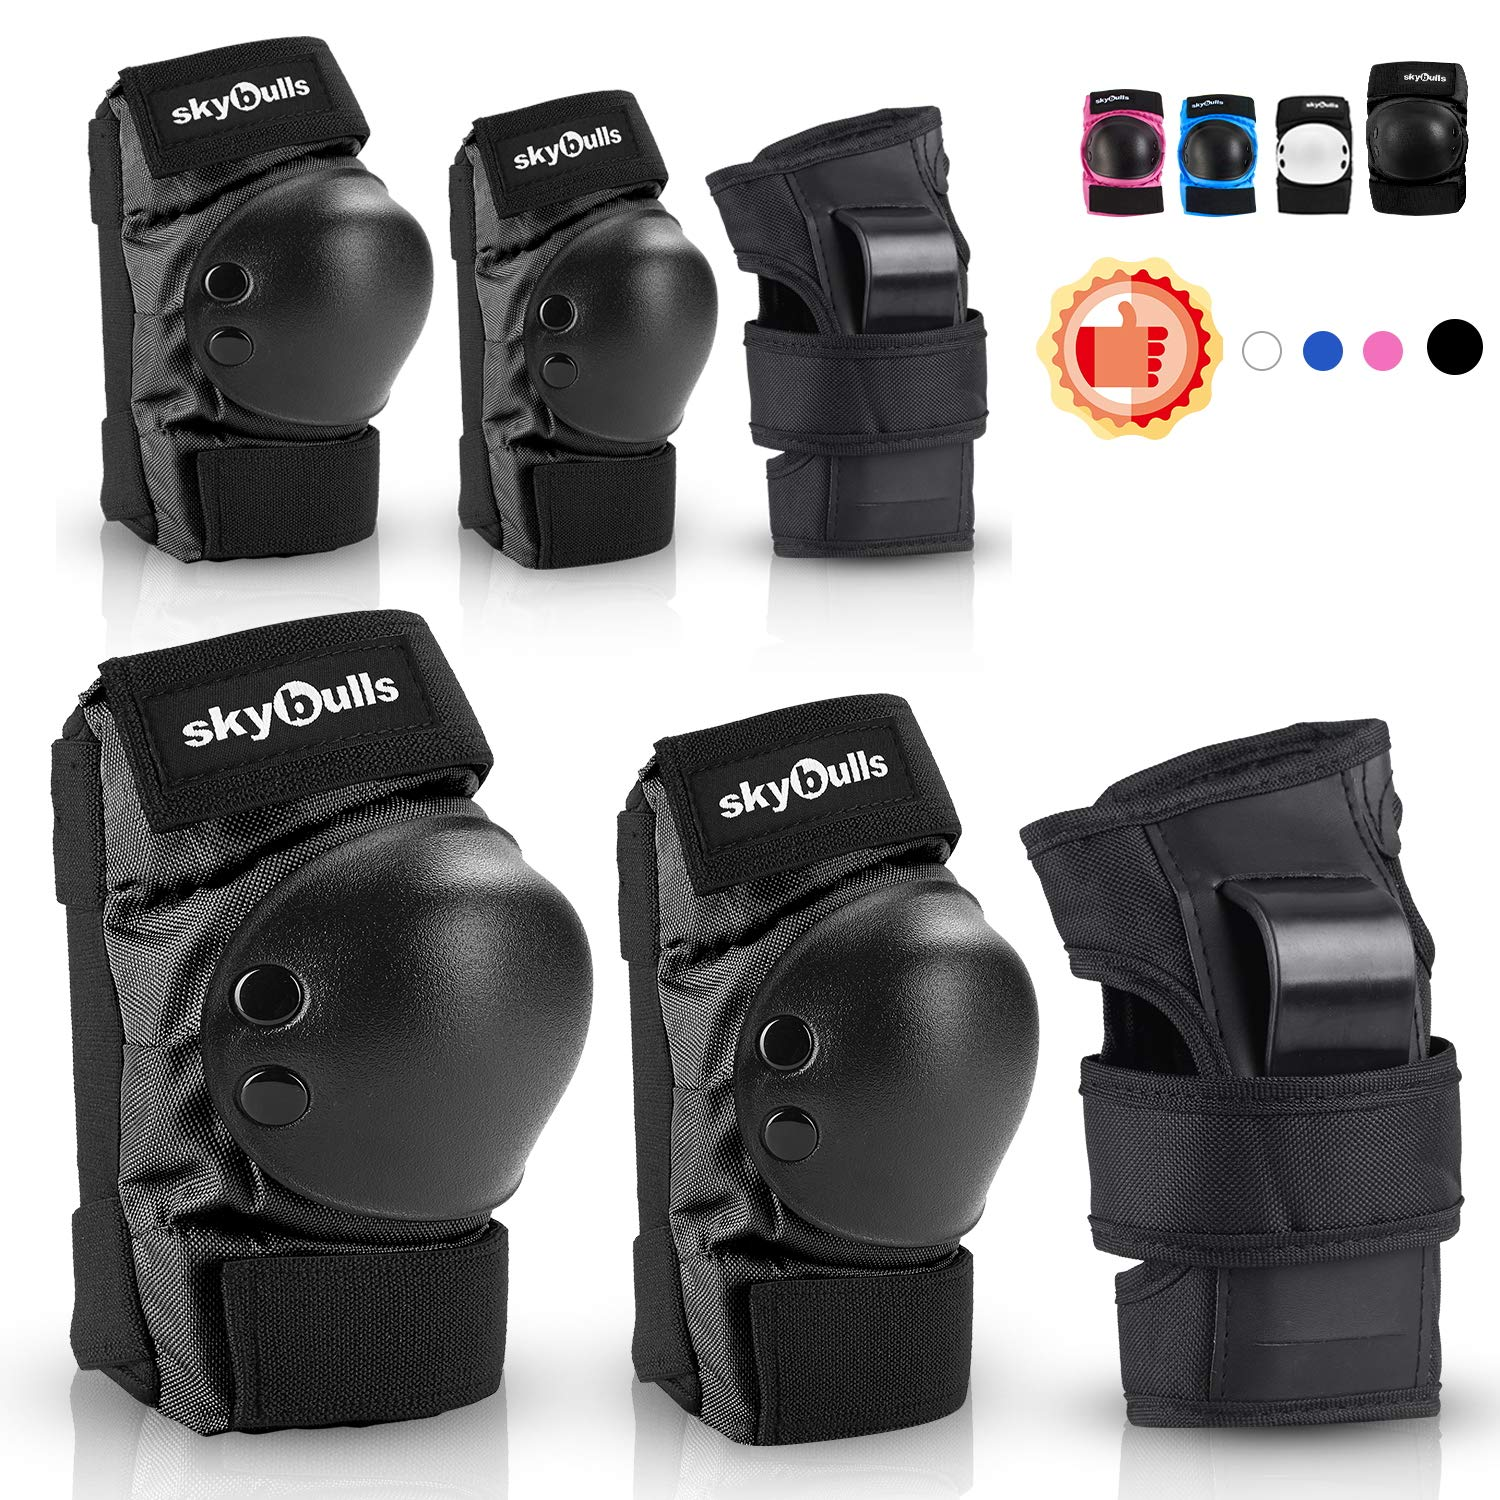 Kids Knee Pads Elbow Pads Wrist Guards, Child Toddler adjustable Protective Gear 6 in 1 Set for Skateboard Bike Cycling Skating Electric-Scooter Roller Inline Skating BMX Bicycle Rollerblading Sports